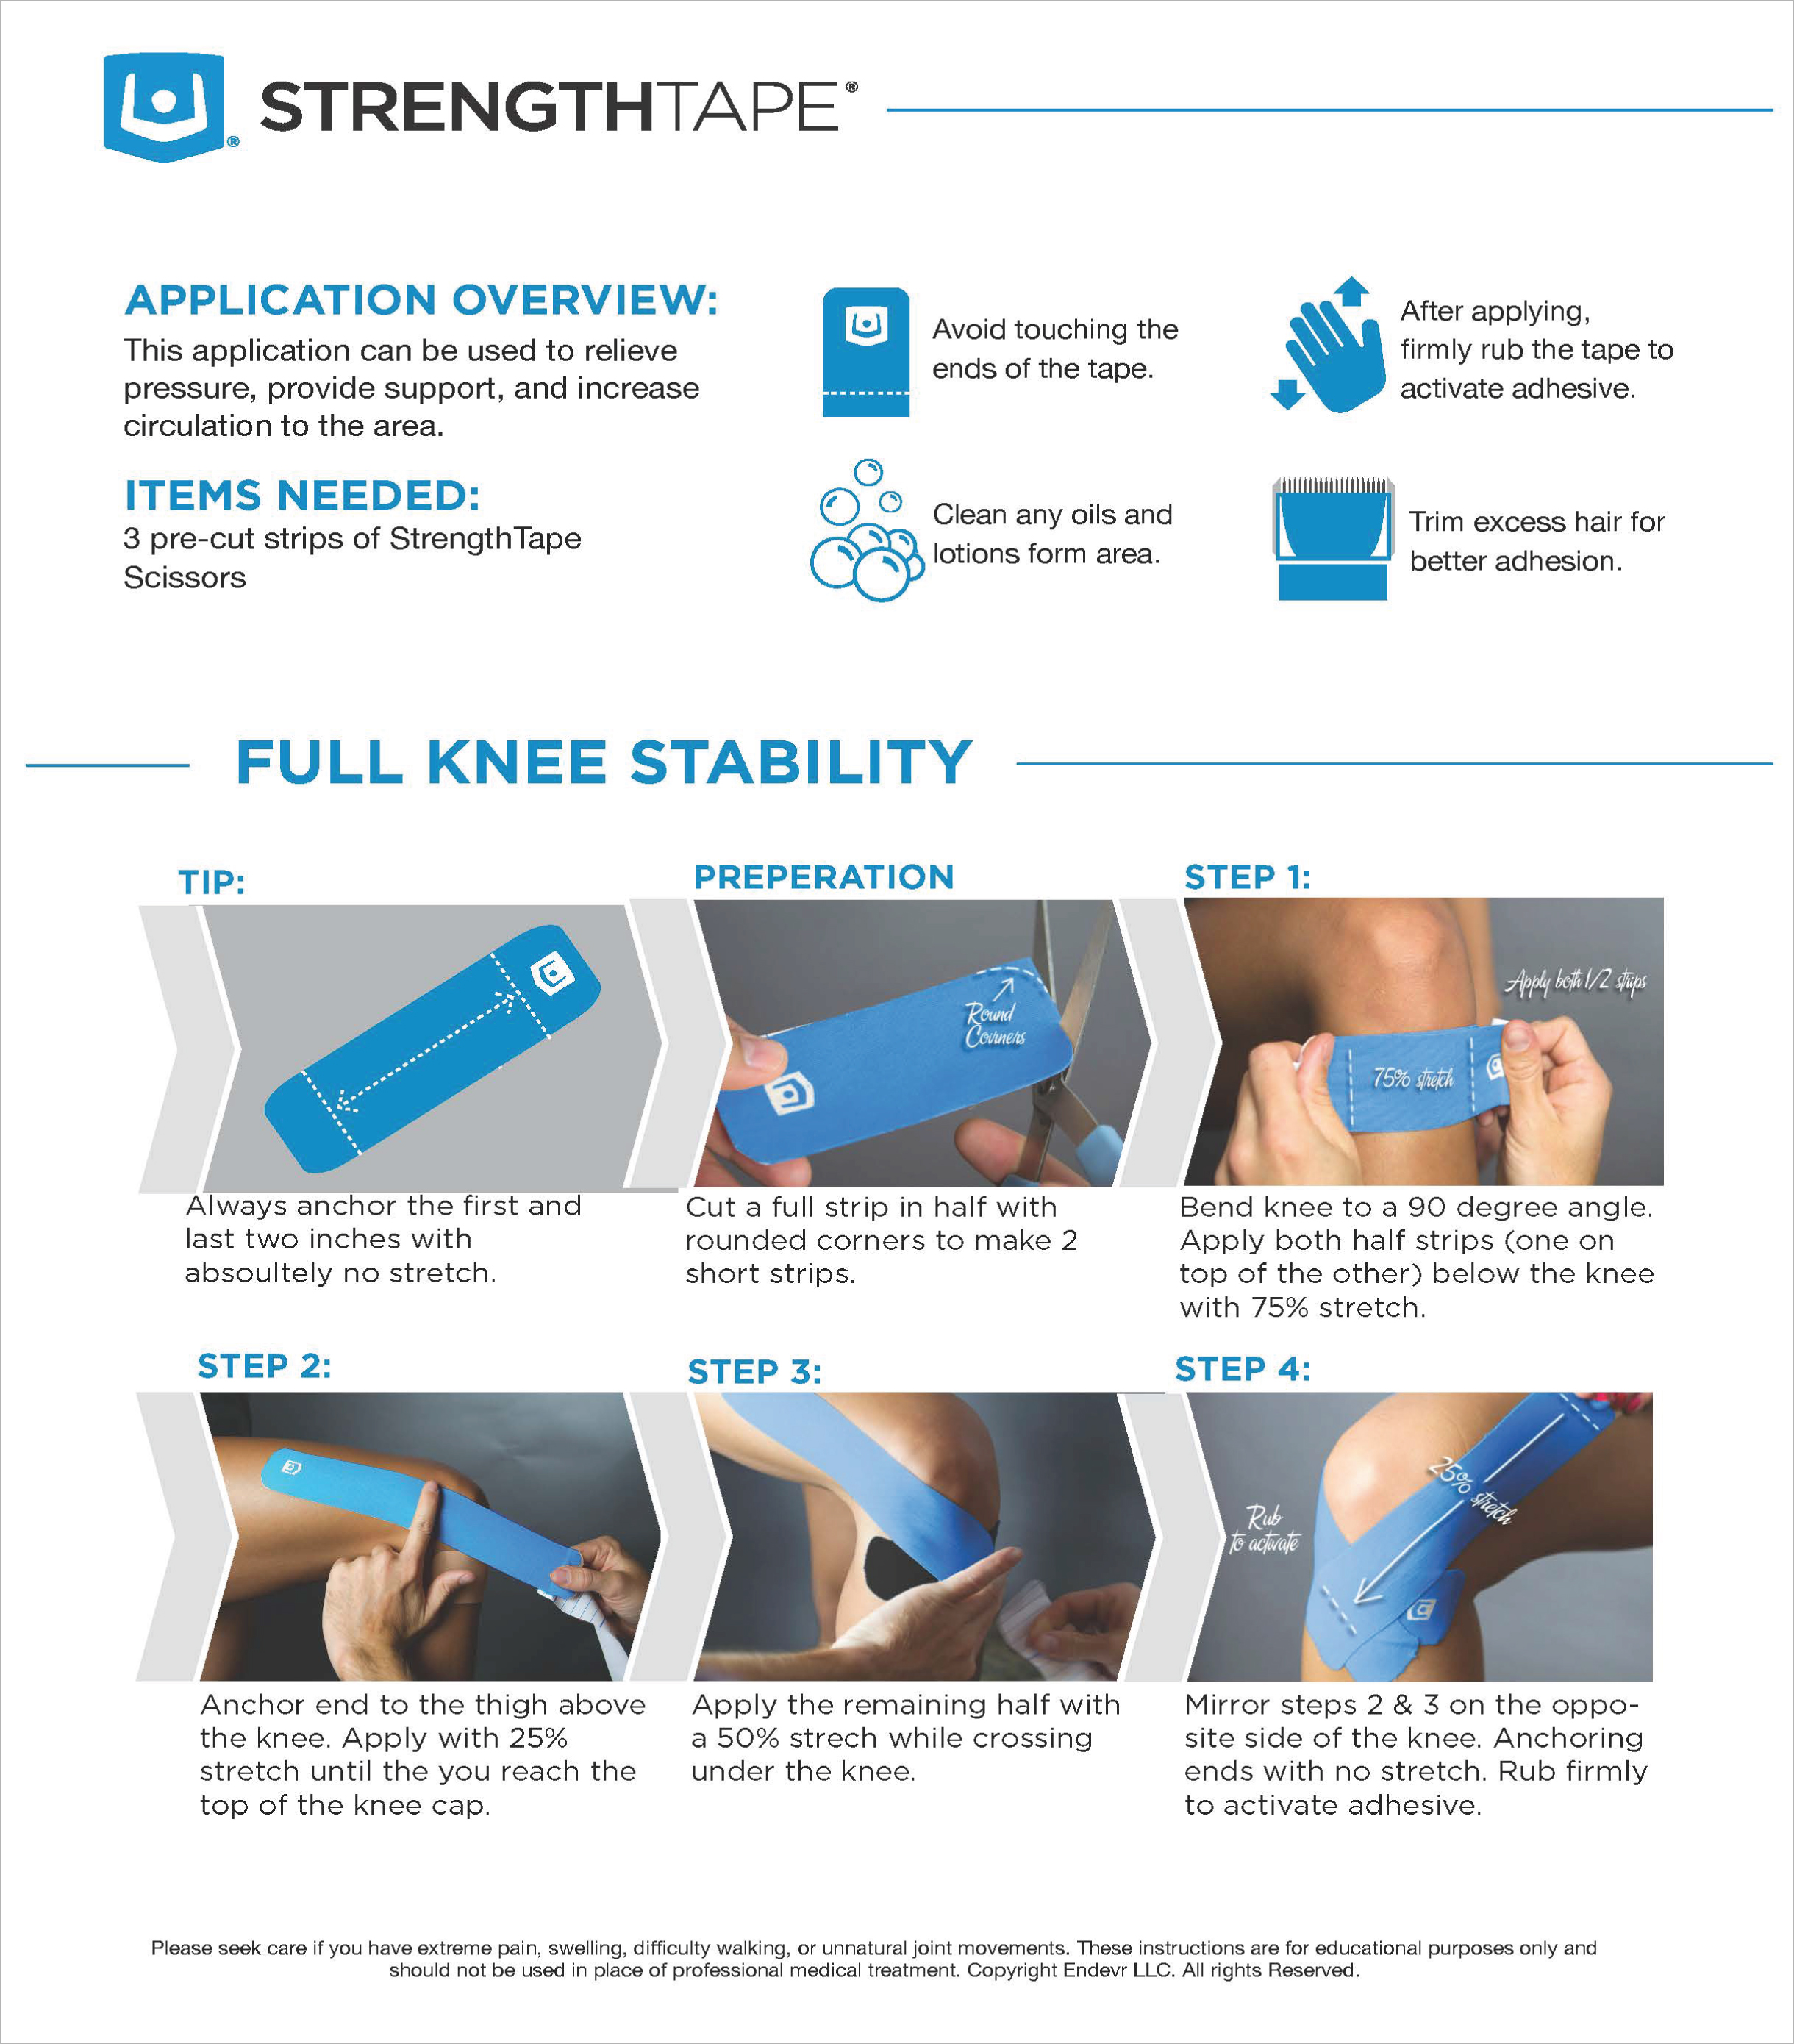 StrengthTape Knee Stability Taping Instructions